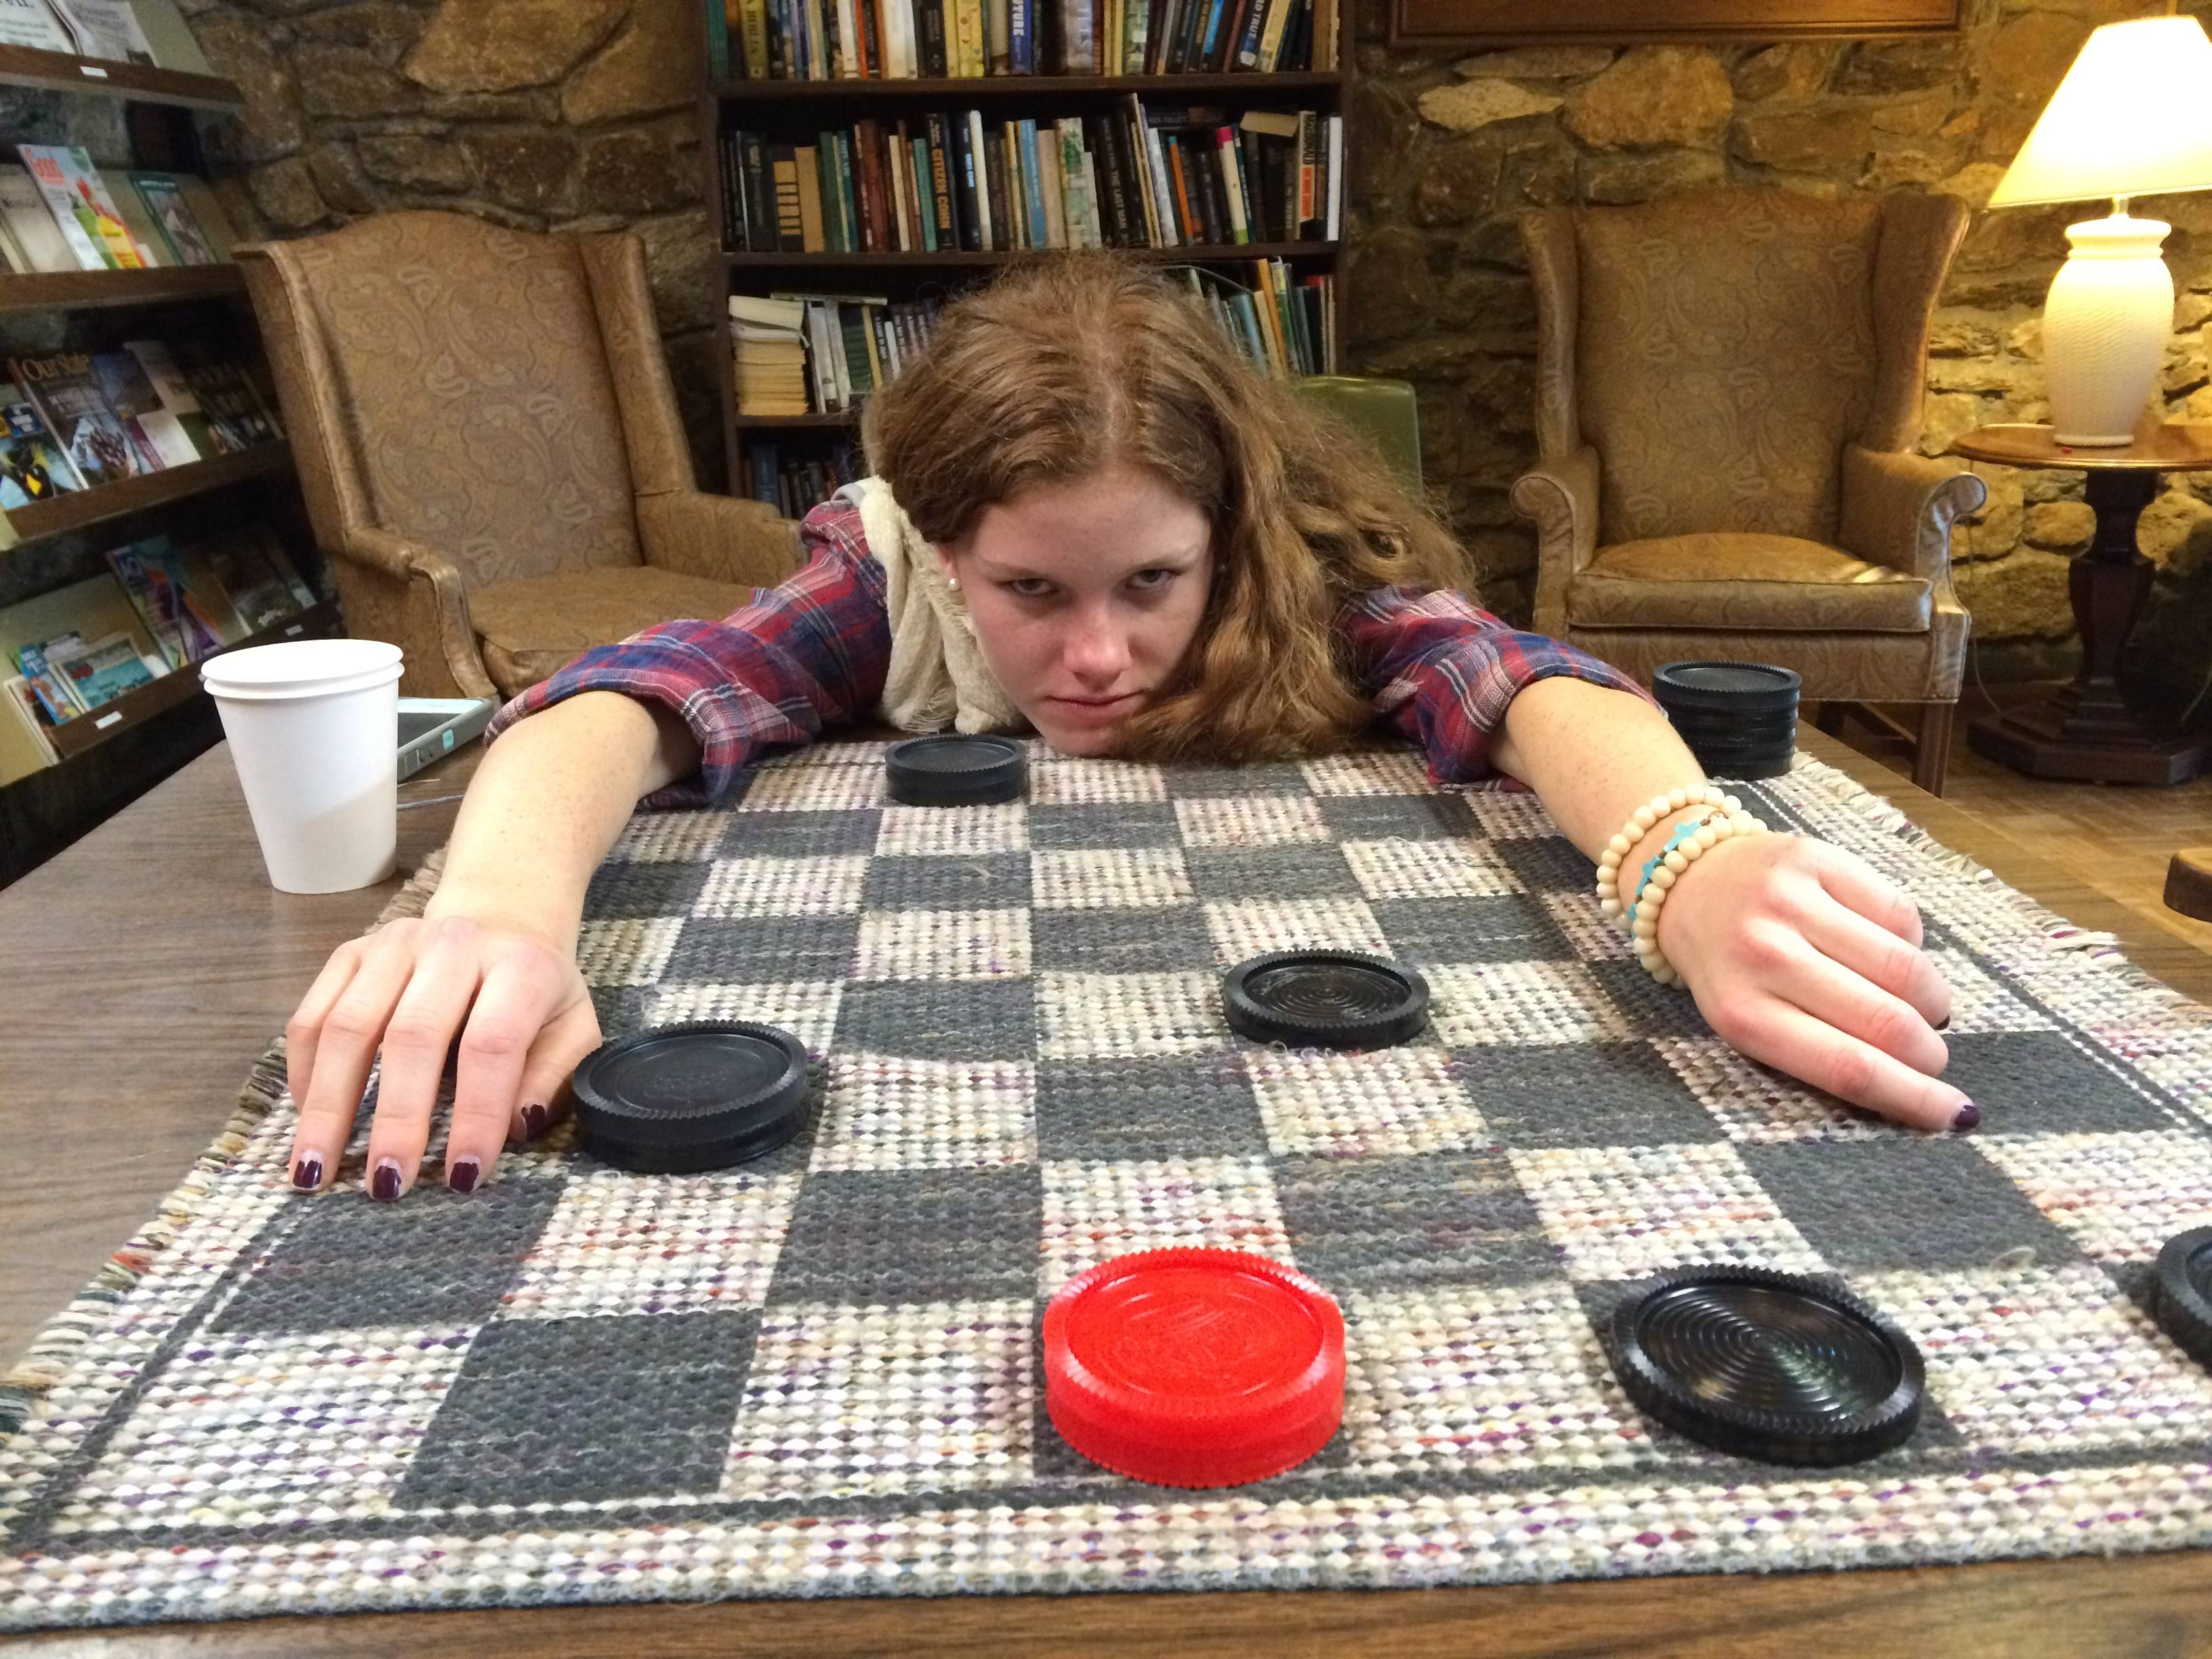 thanksgiving checkers loss 6 Every Thanksgiving His Cousin Challenges Him to Checkers... 8 Years of Defeat and Counting